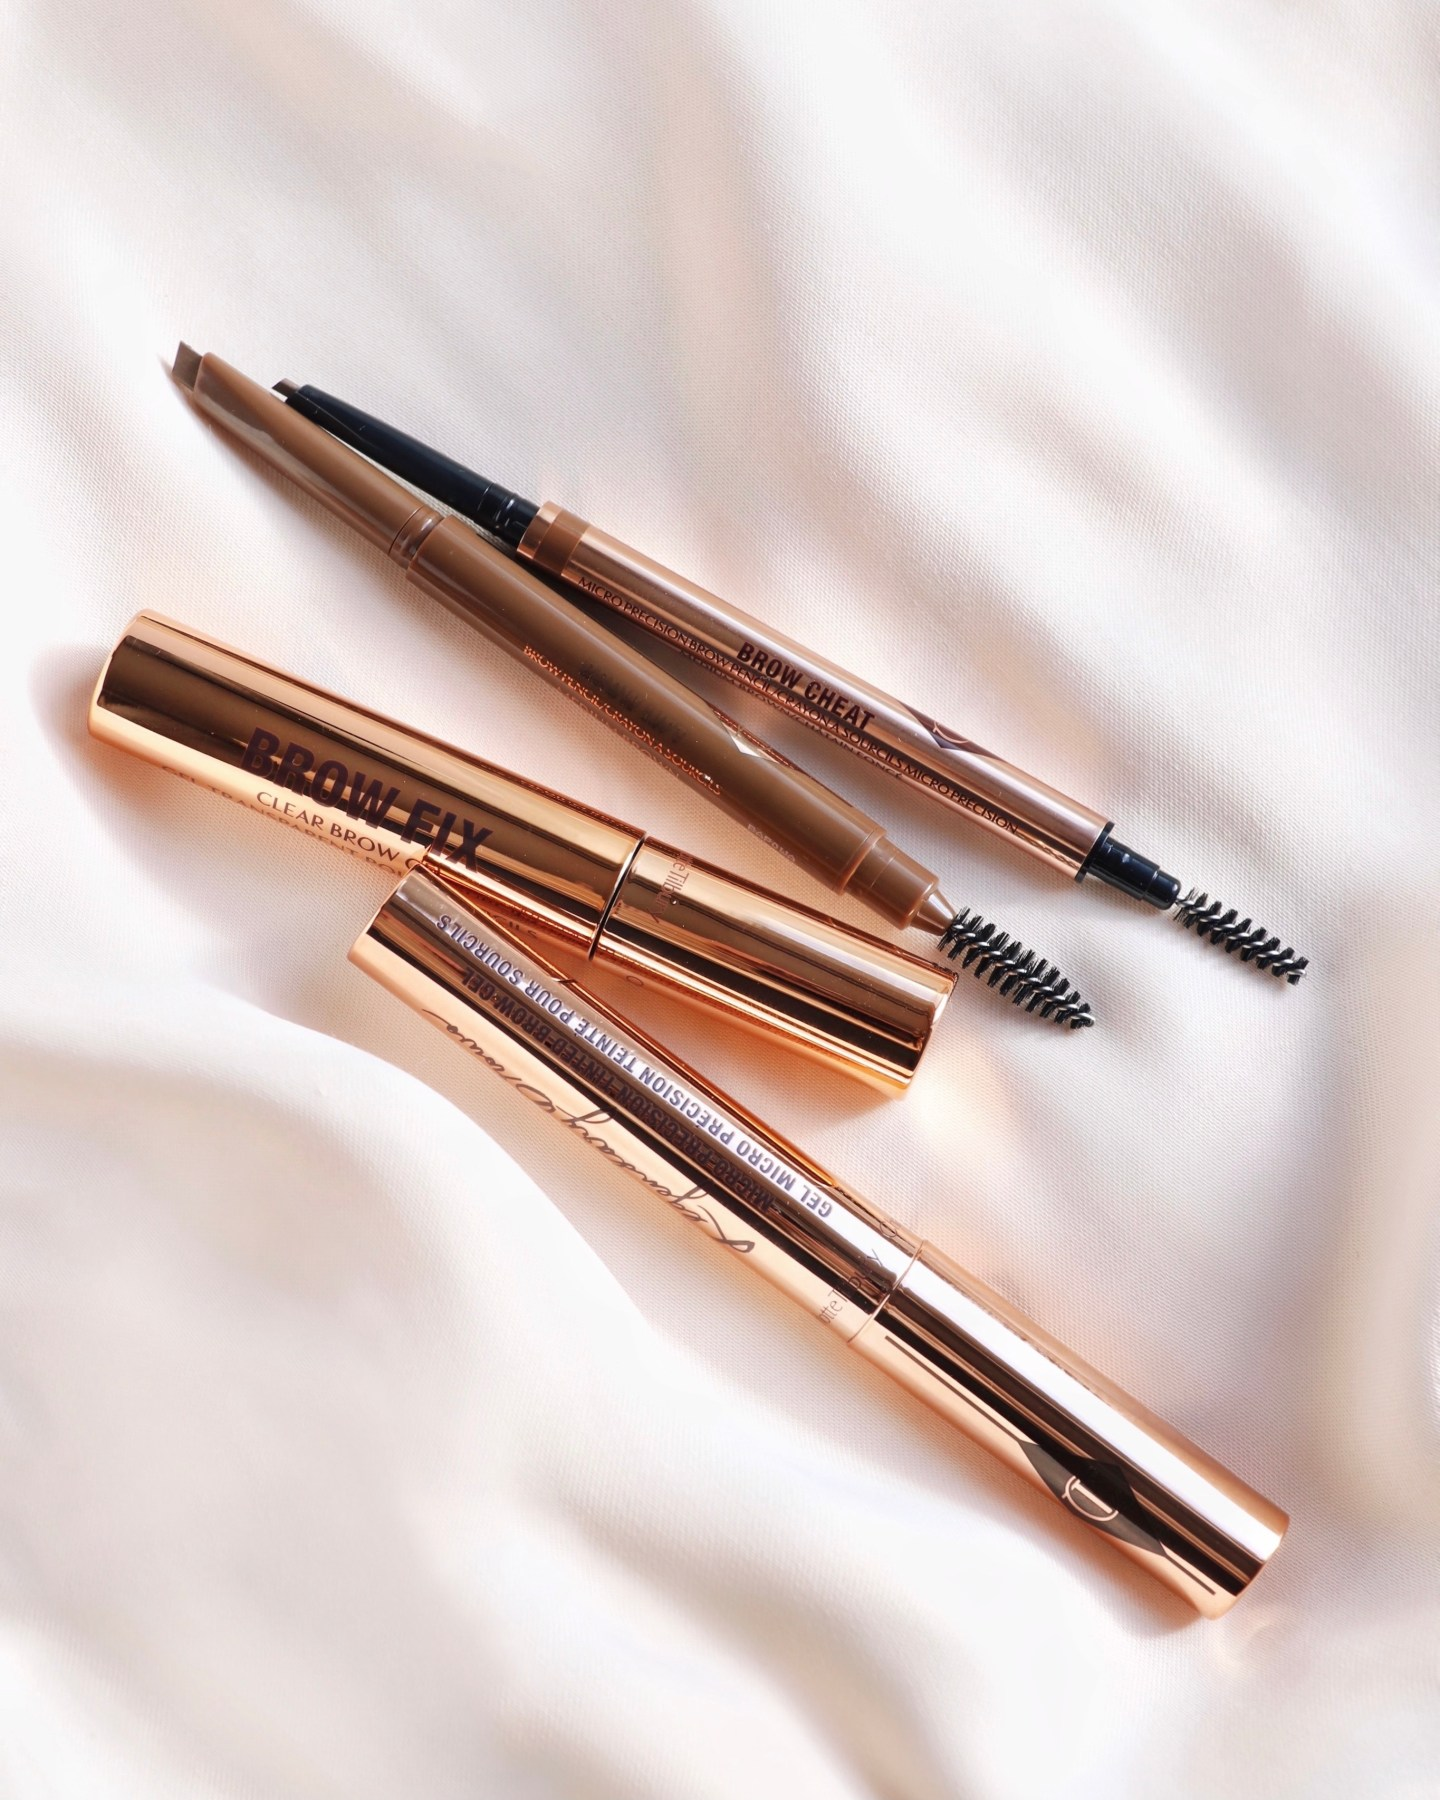 Charlotte Tilbury Supermodel Brows 3-Step System Review